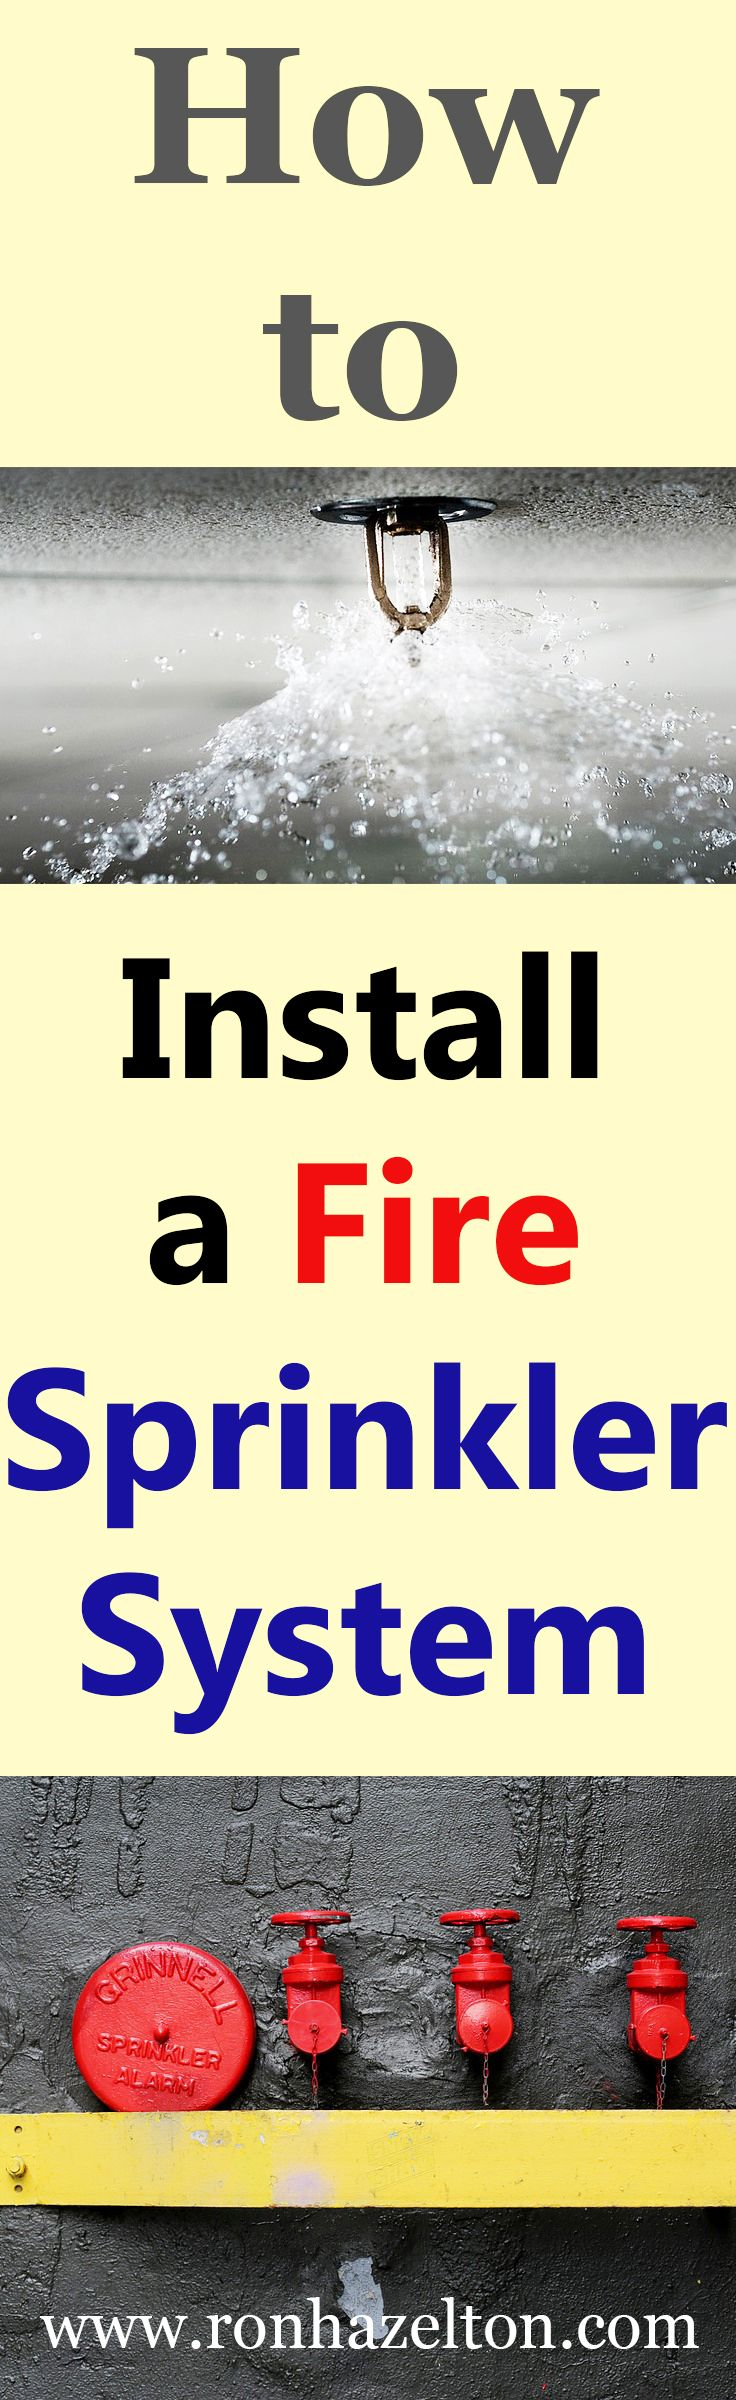 A kitchen fire can engulf an entire house, but not when you have sprinklers. #HouseCalls